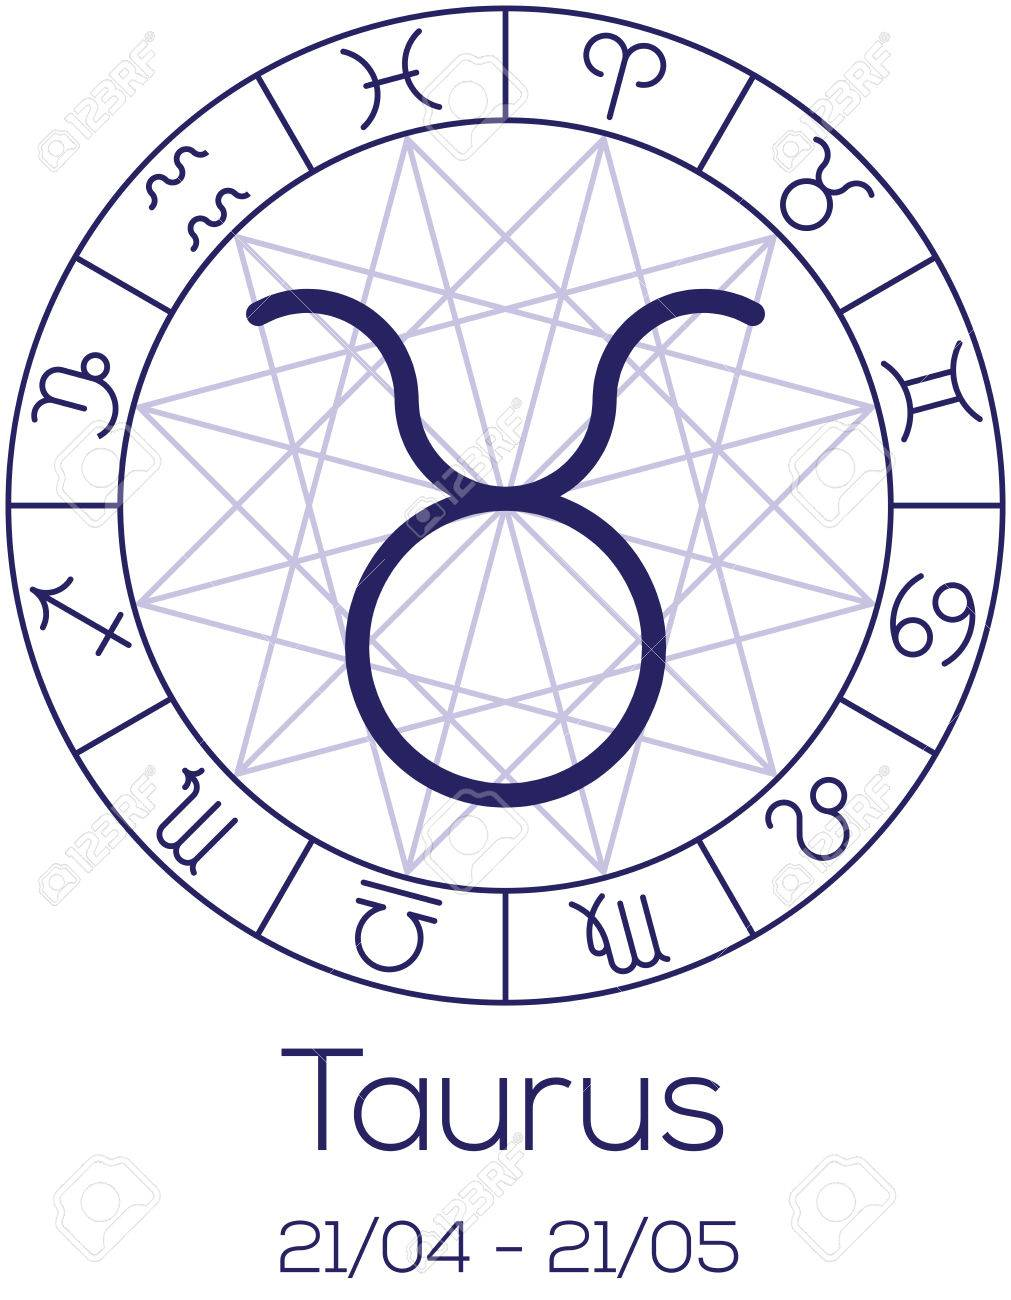 Zodiac sign taurus astrological symbol in wheel with polygonal zodiac sign taurus astrological symbol in wheel with polygonal background astrology chart in geenschuldenfo Gallery